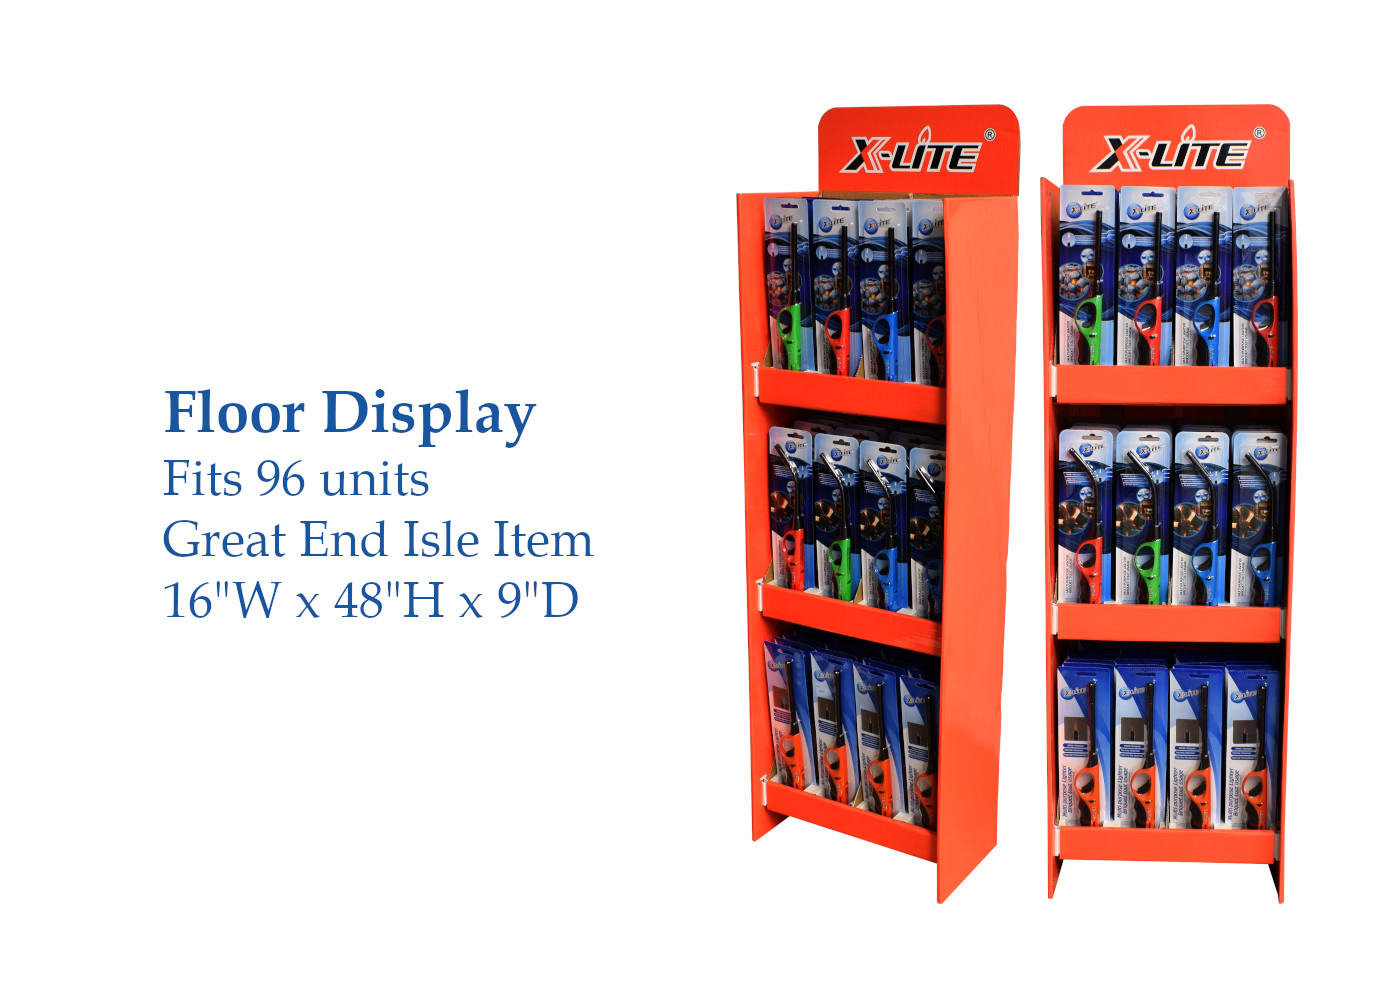 Floor Display website.jpg